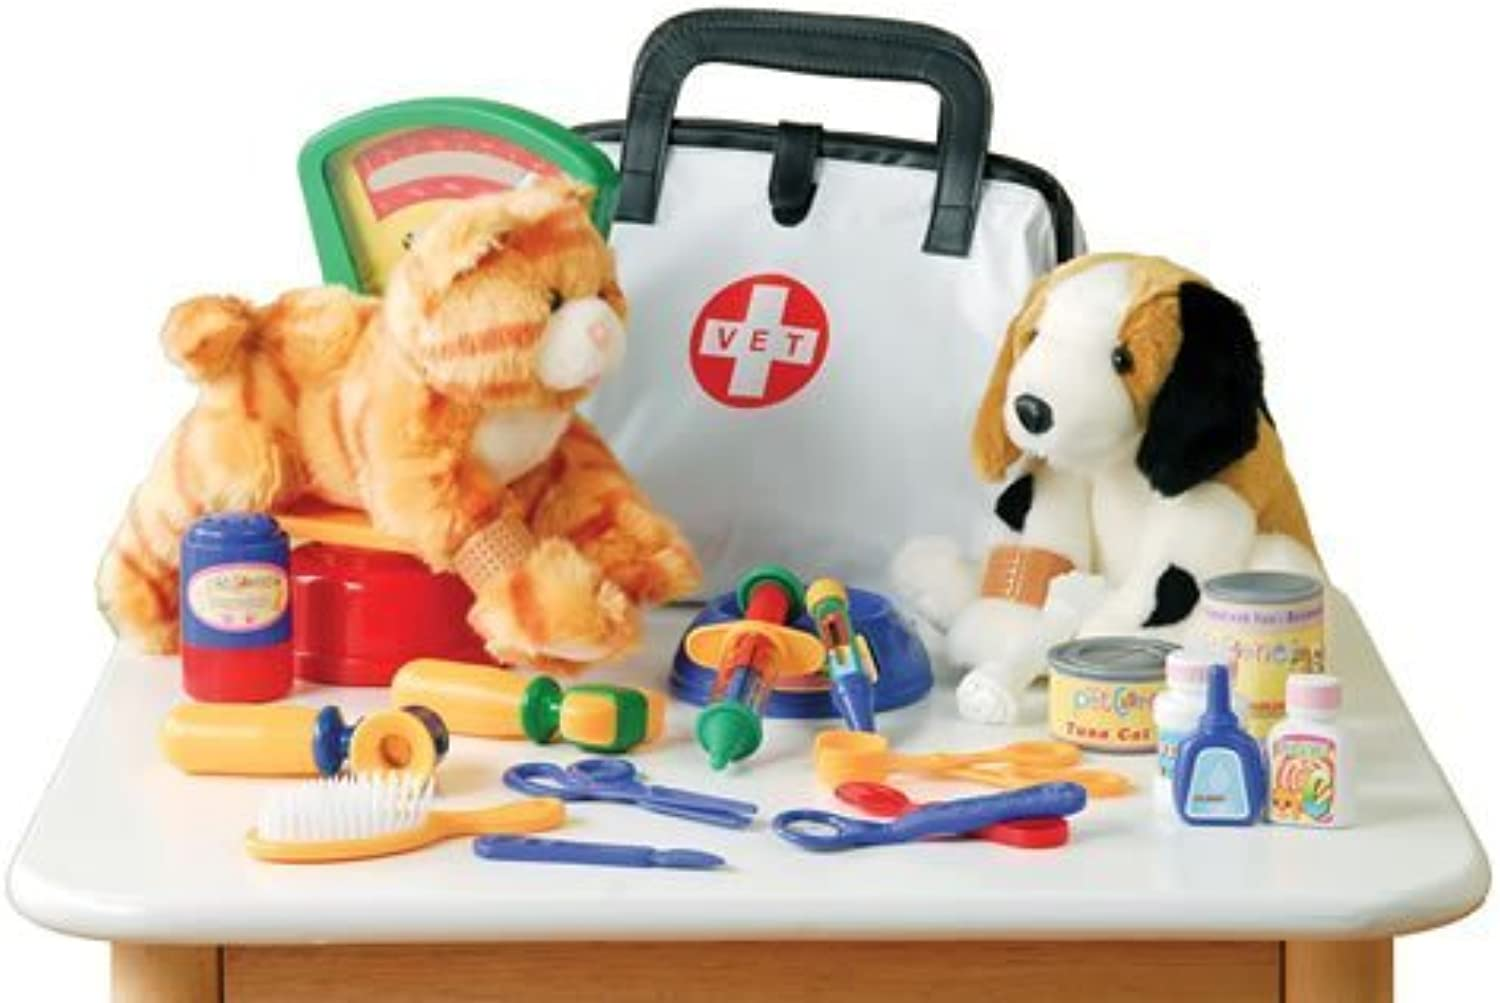 Play Vet Set - For Pretend Play - 30 Piece Set by ConstructivePlaythings